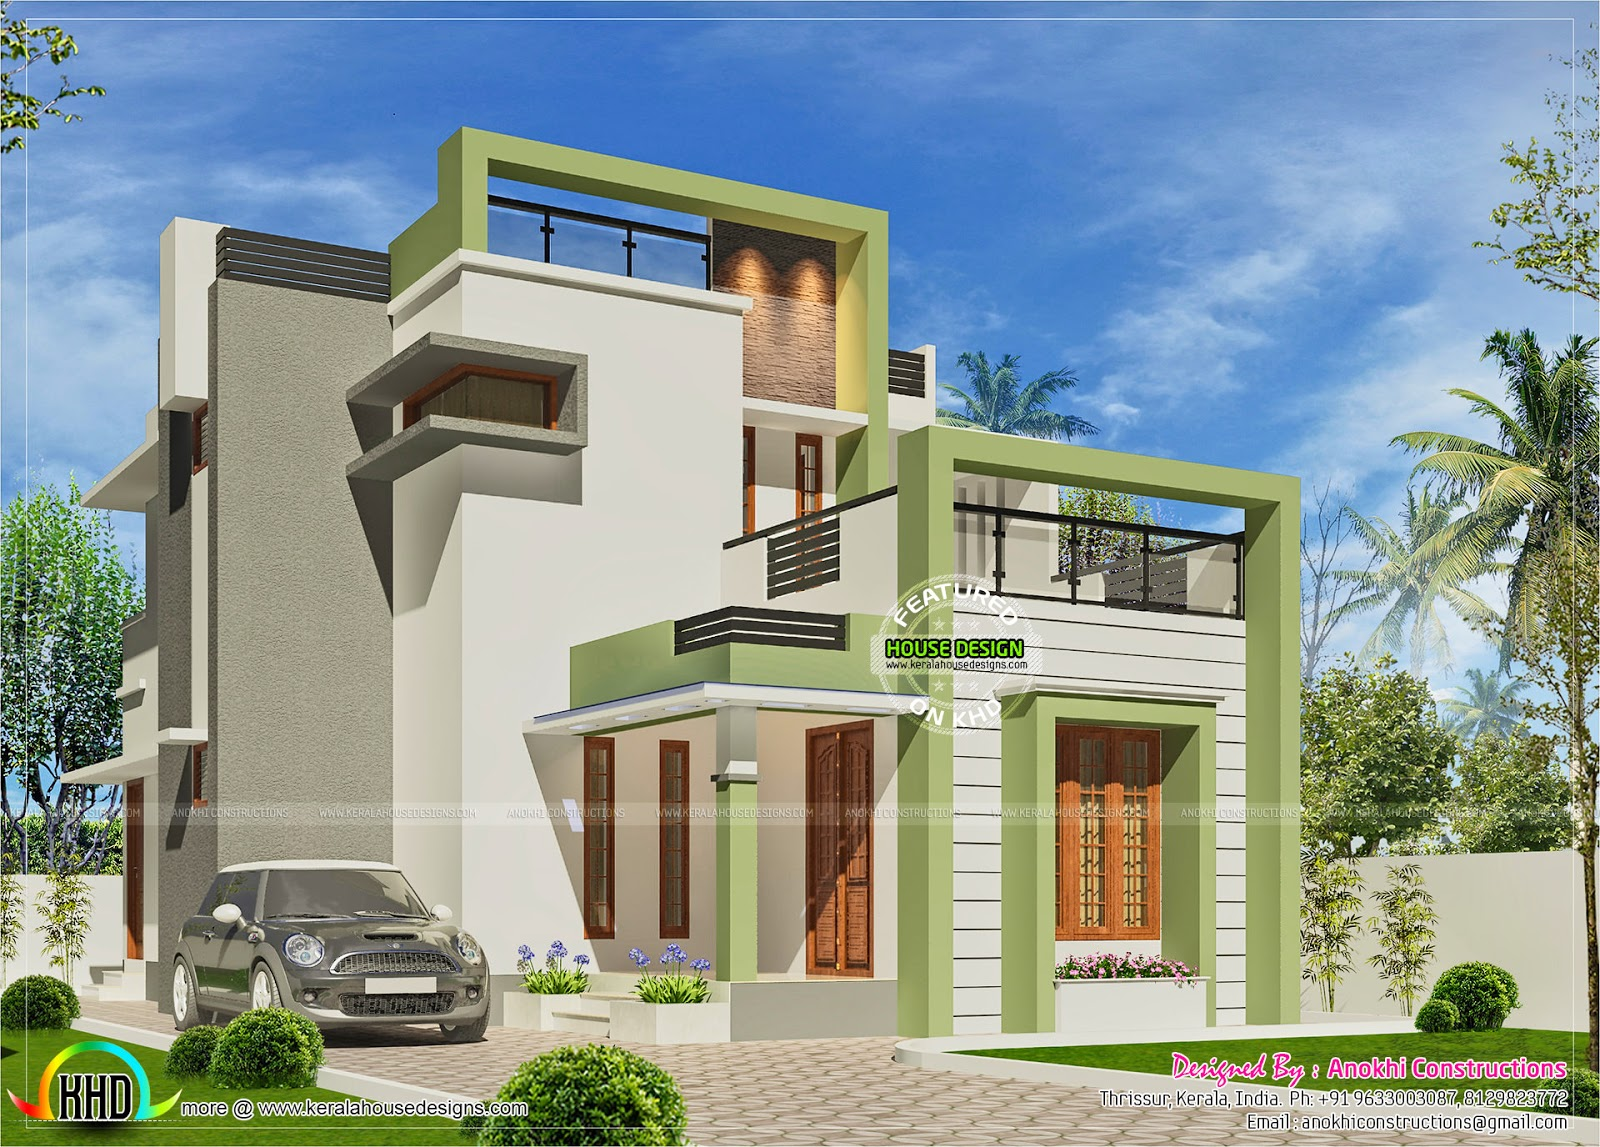 Simple small budget contemporary home kerala home design for Simple small modern house